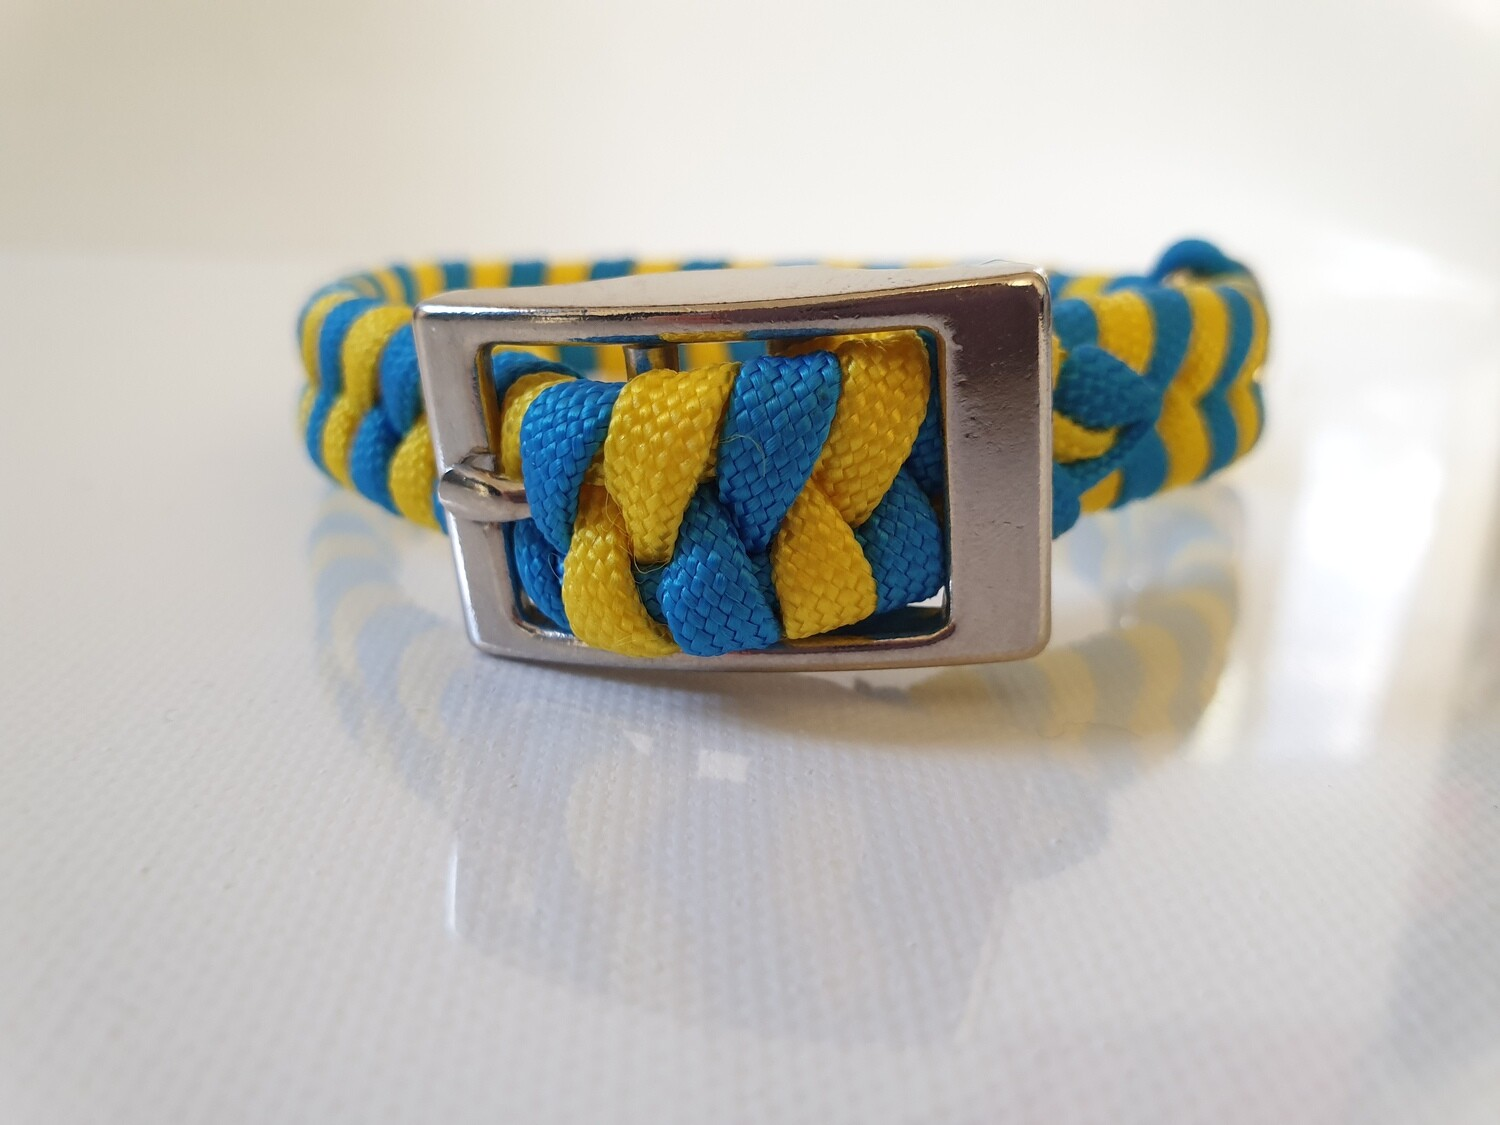 Flat Braid Extra Small Blue/Yellow Dog Collar